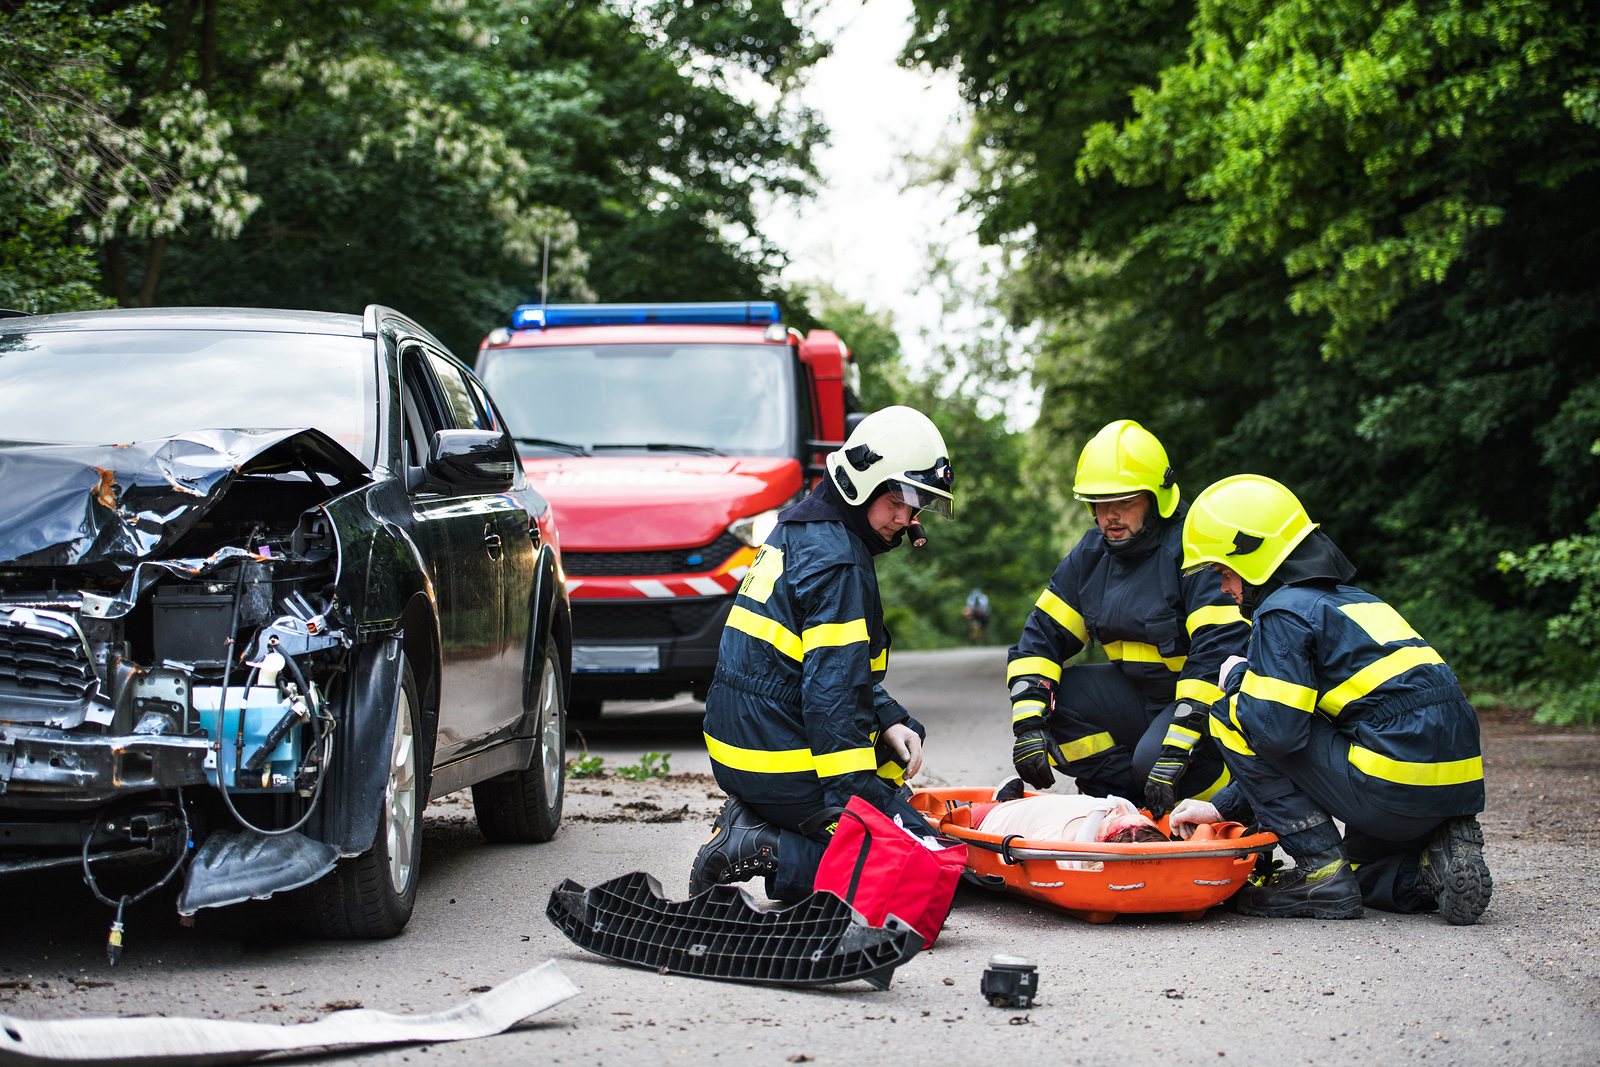 Firefighters Helping A Young Injured Woman After A Car Accident.